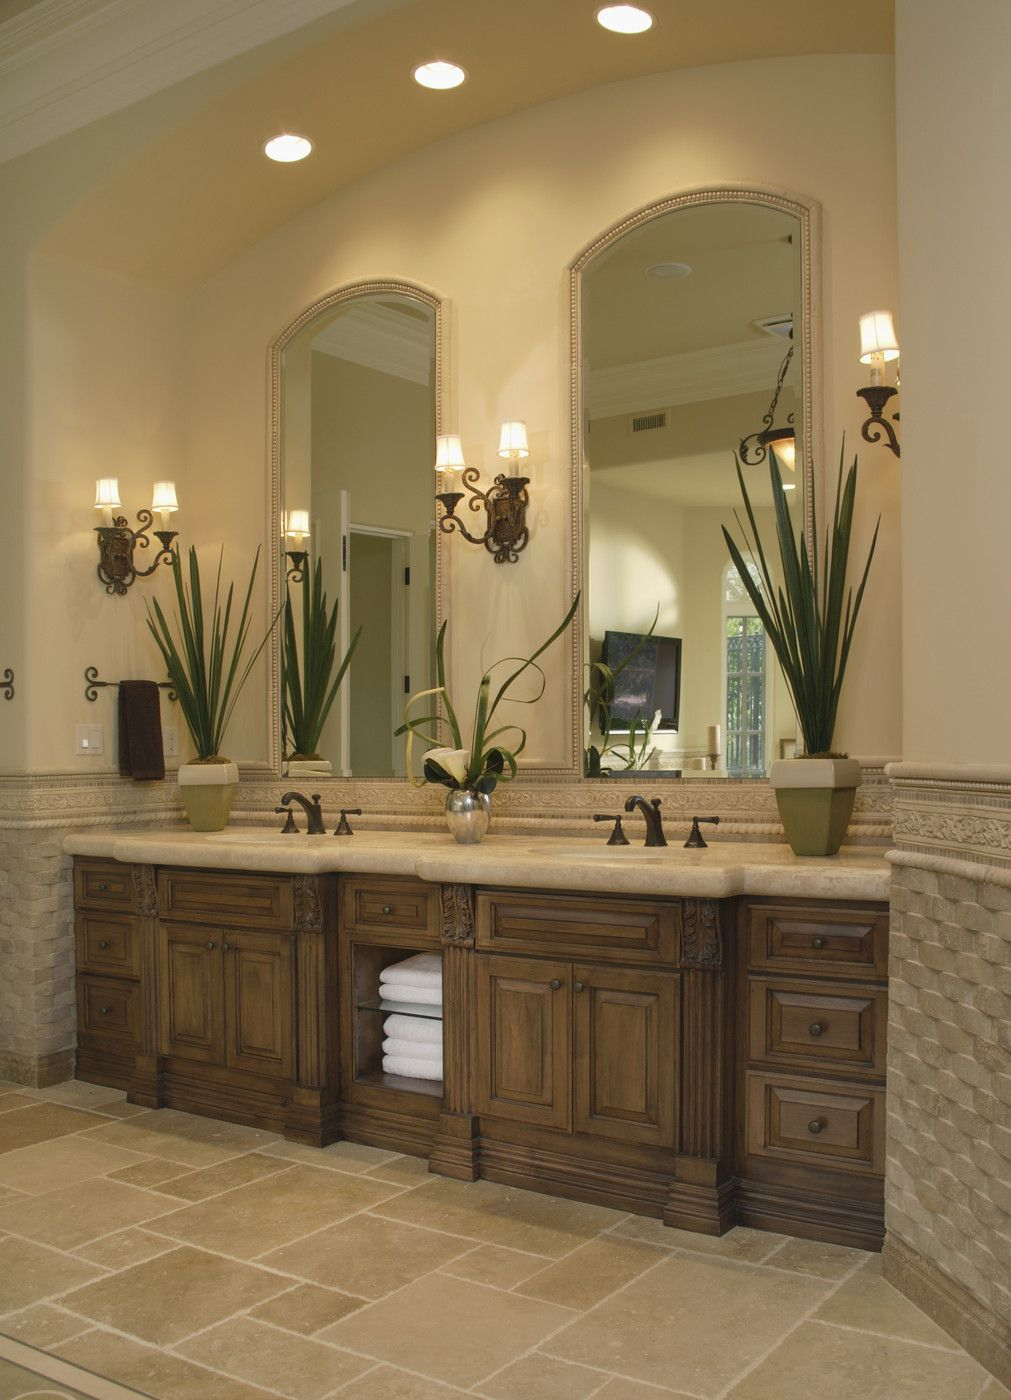 Rise and shine bathroom vanity lighting tips light up the area evenly aloadofball Choice Image